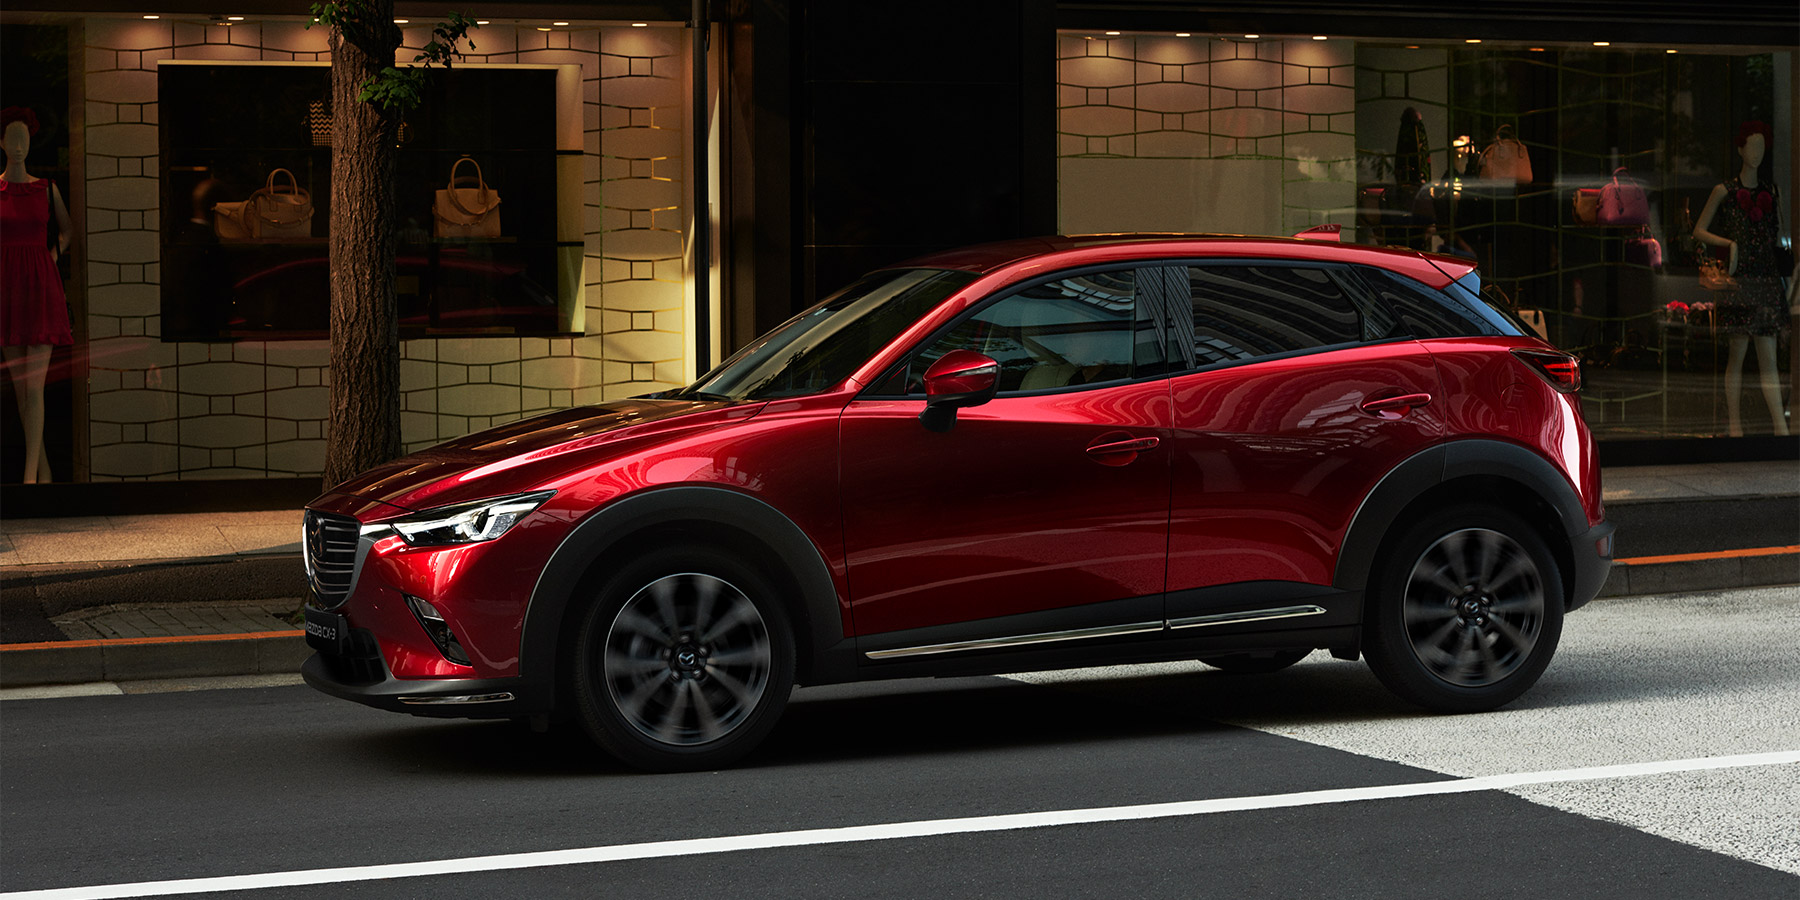 https://peternel.mazda.at/wp-content/uploads/sites/96/2019/07/IPM-hero-CX-3.jpg